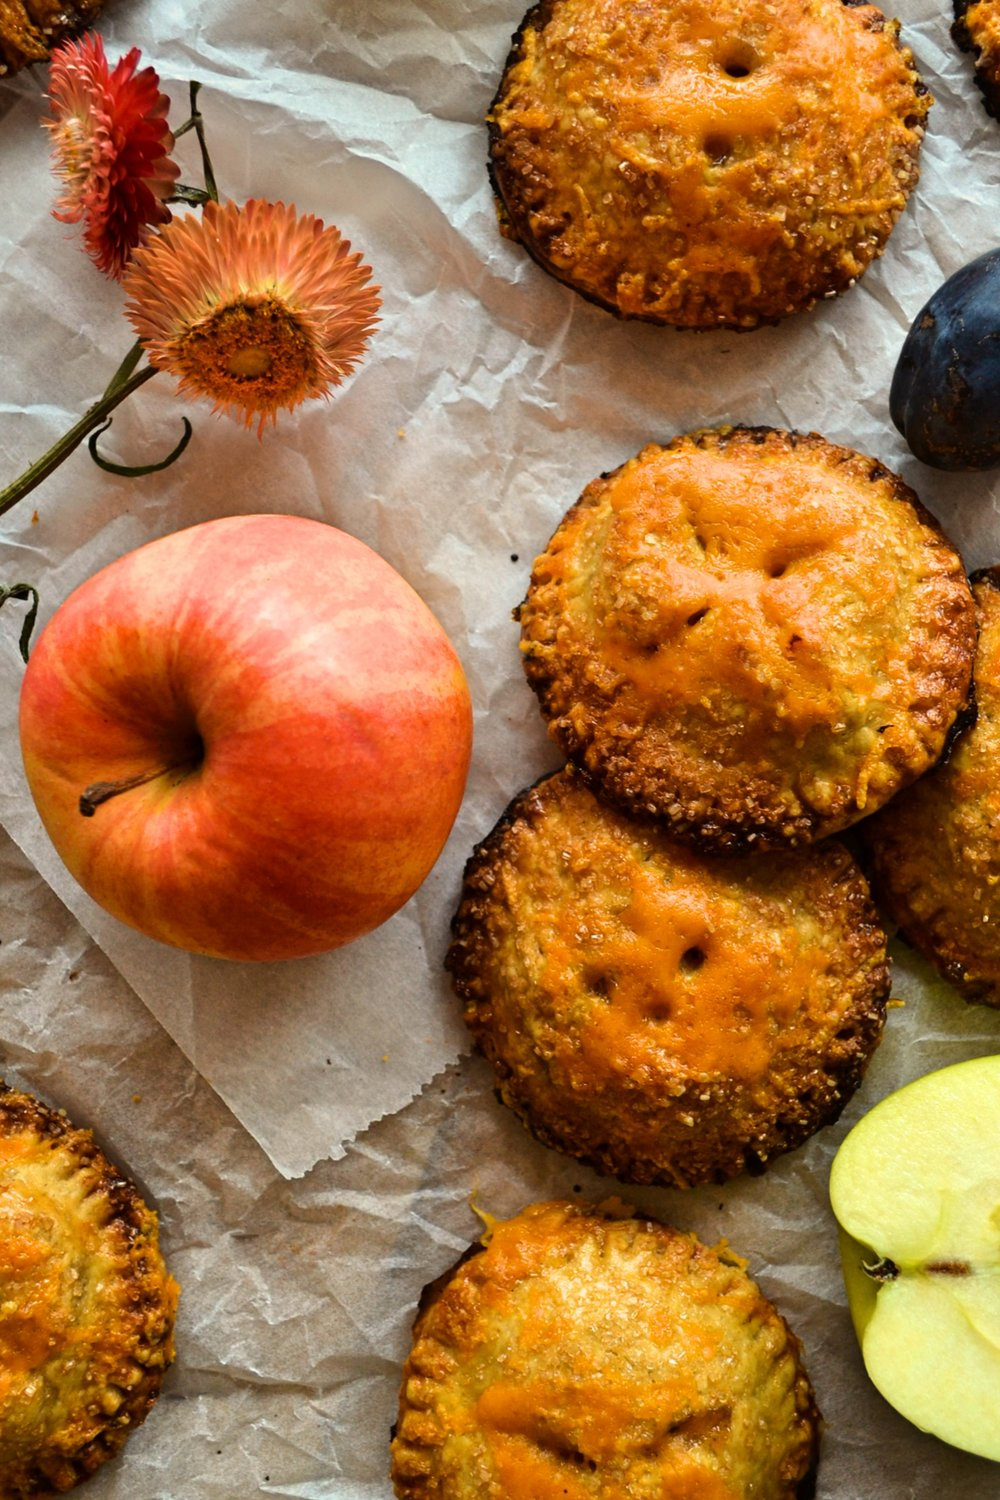 Rye_crust_apple_chilli_pepper_cheddar_mini_pies6.jpg